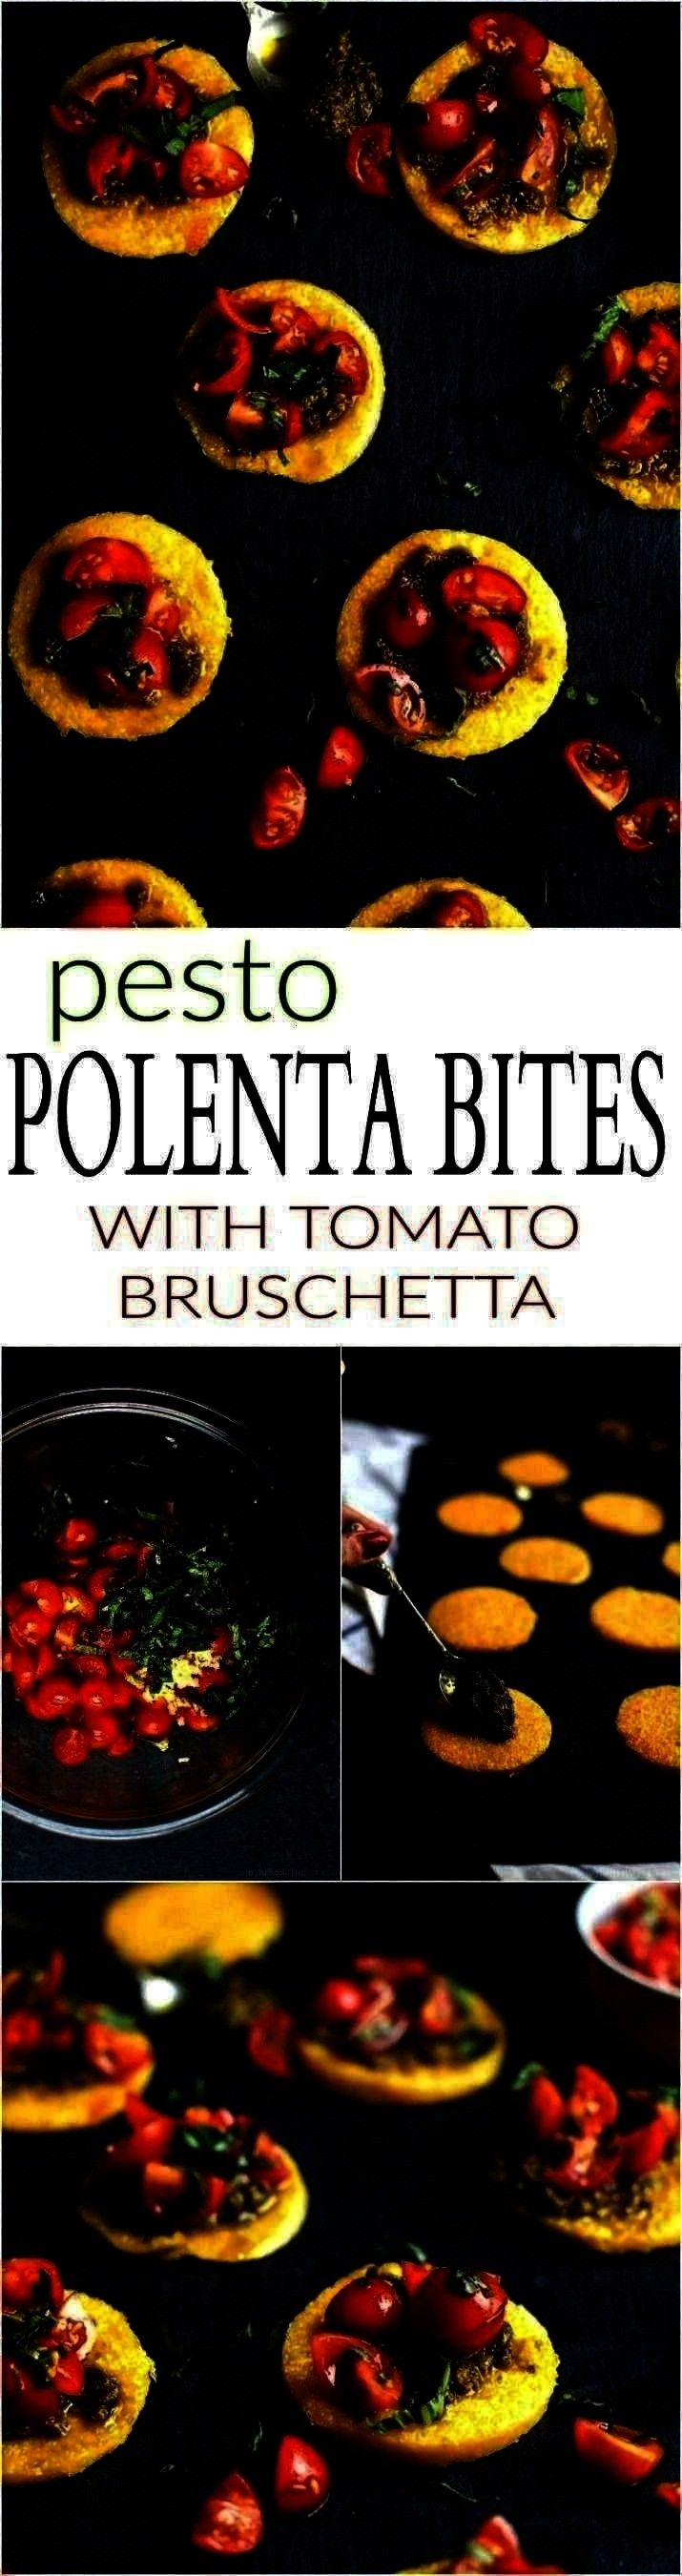 Bites with Tomato Bruschetta Polenta Bites with Tomato Bruschetta Pesto Polenta Bites with Tomato Bruschetta  Caprese Florentine Quiche  Between Friends  Copy Me That cuc...